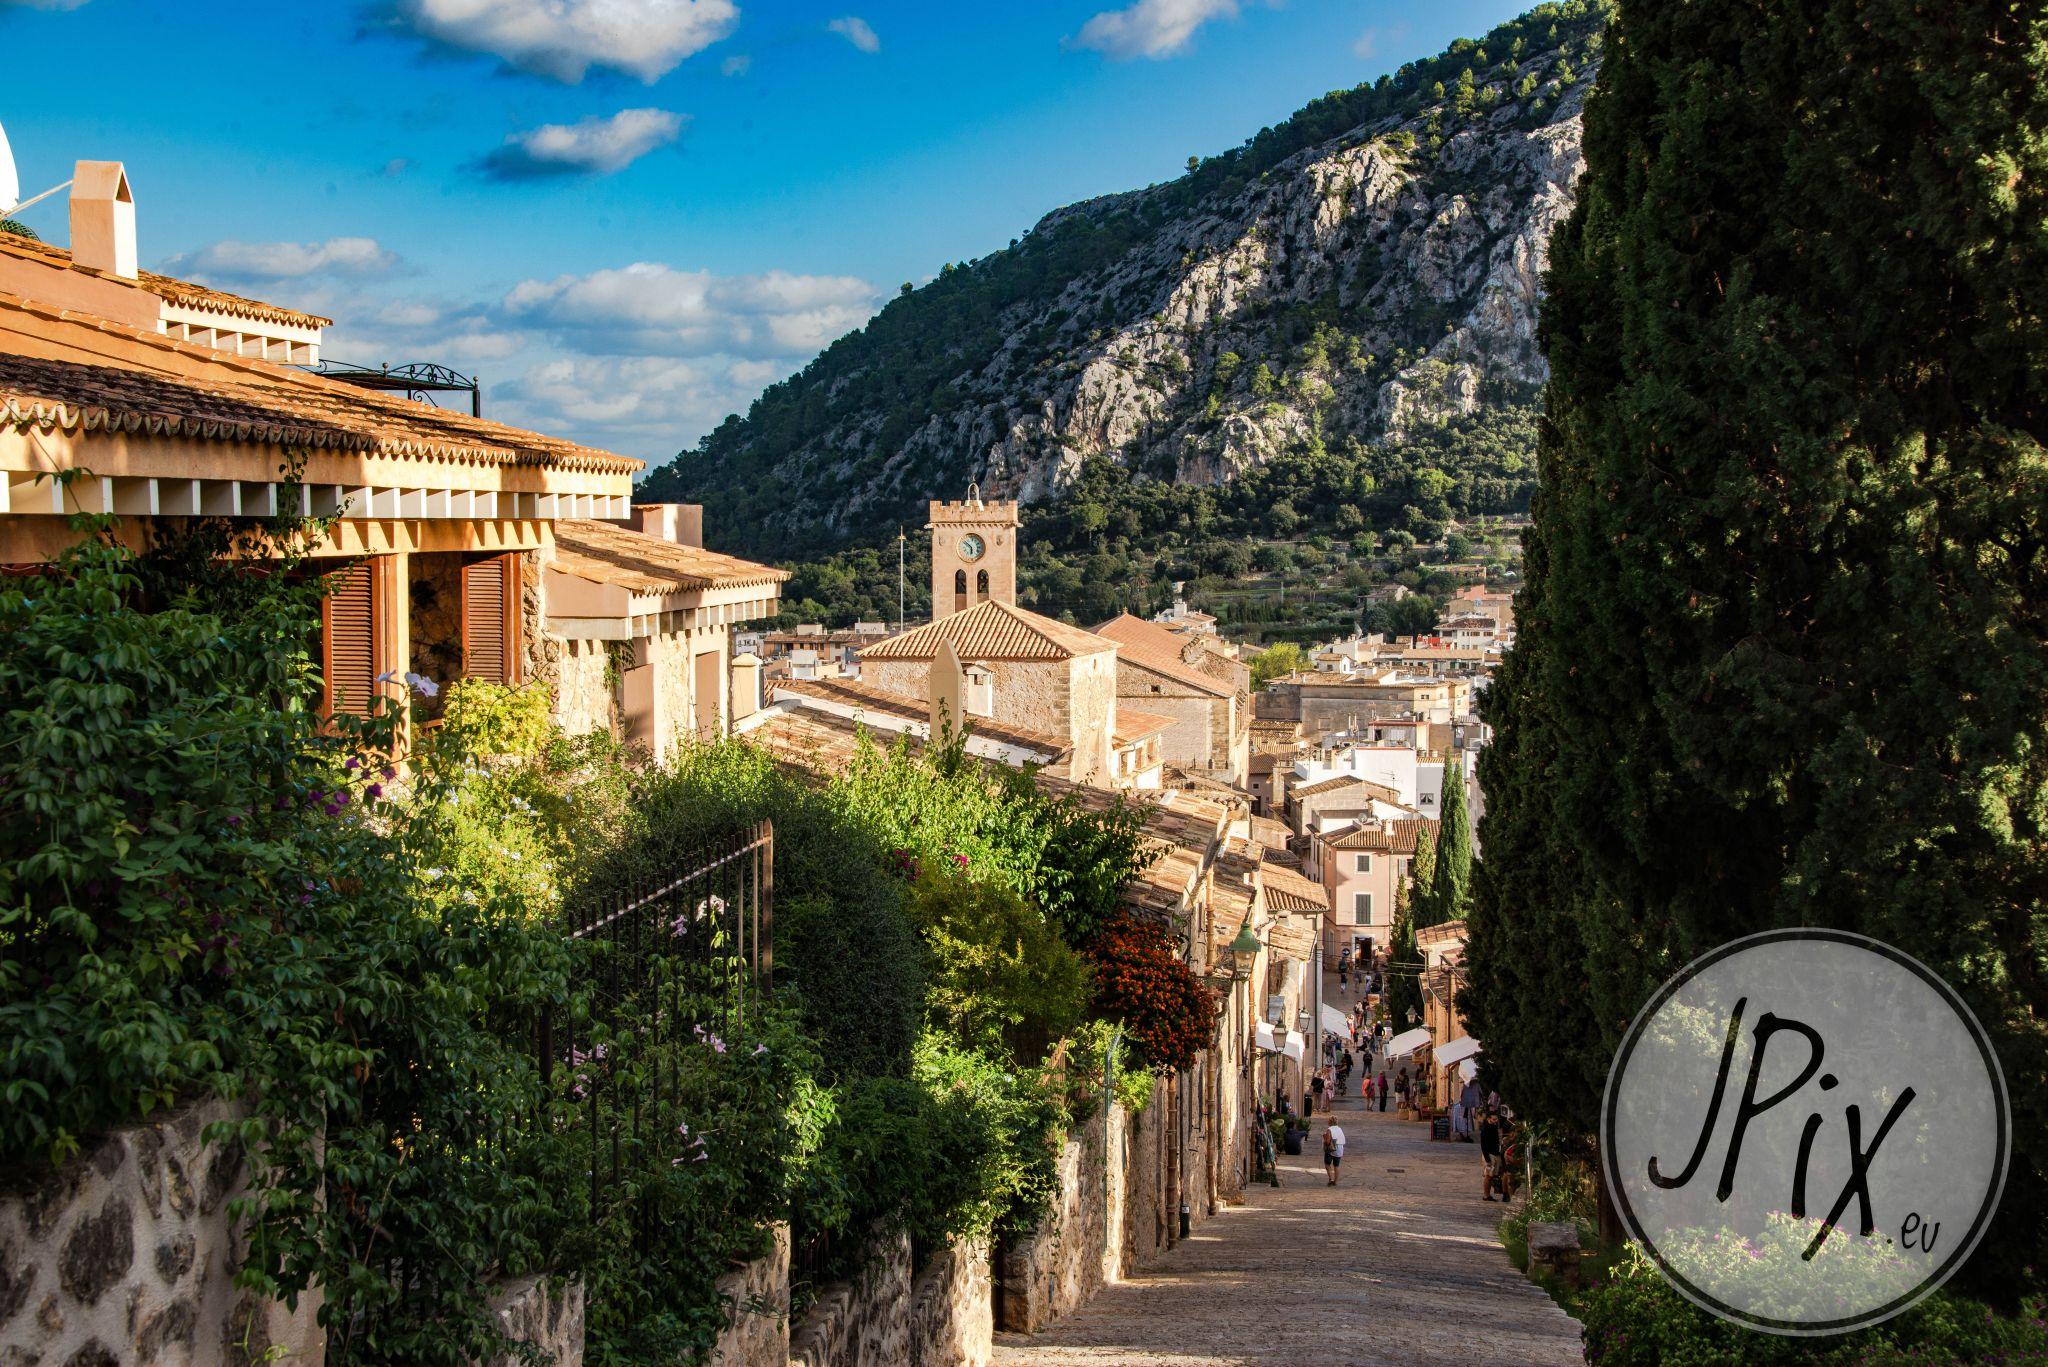 View at Pollenca, Spain